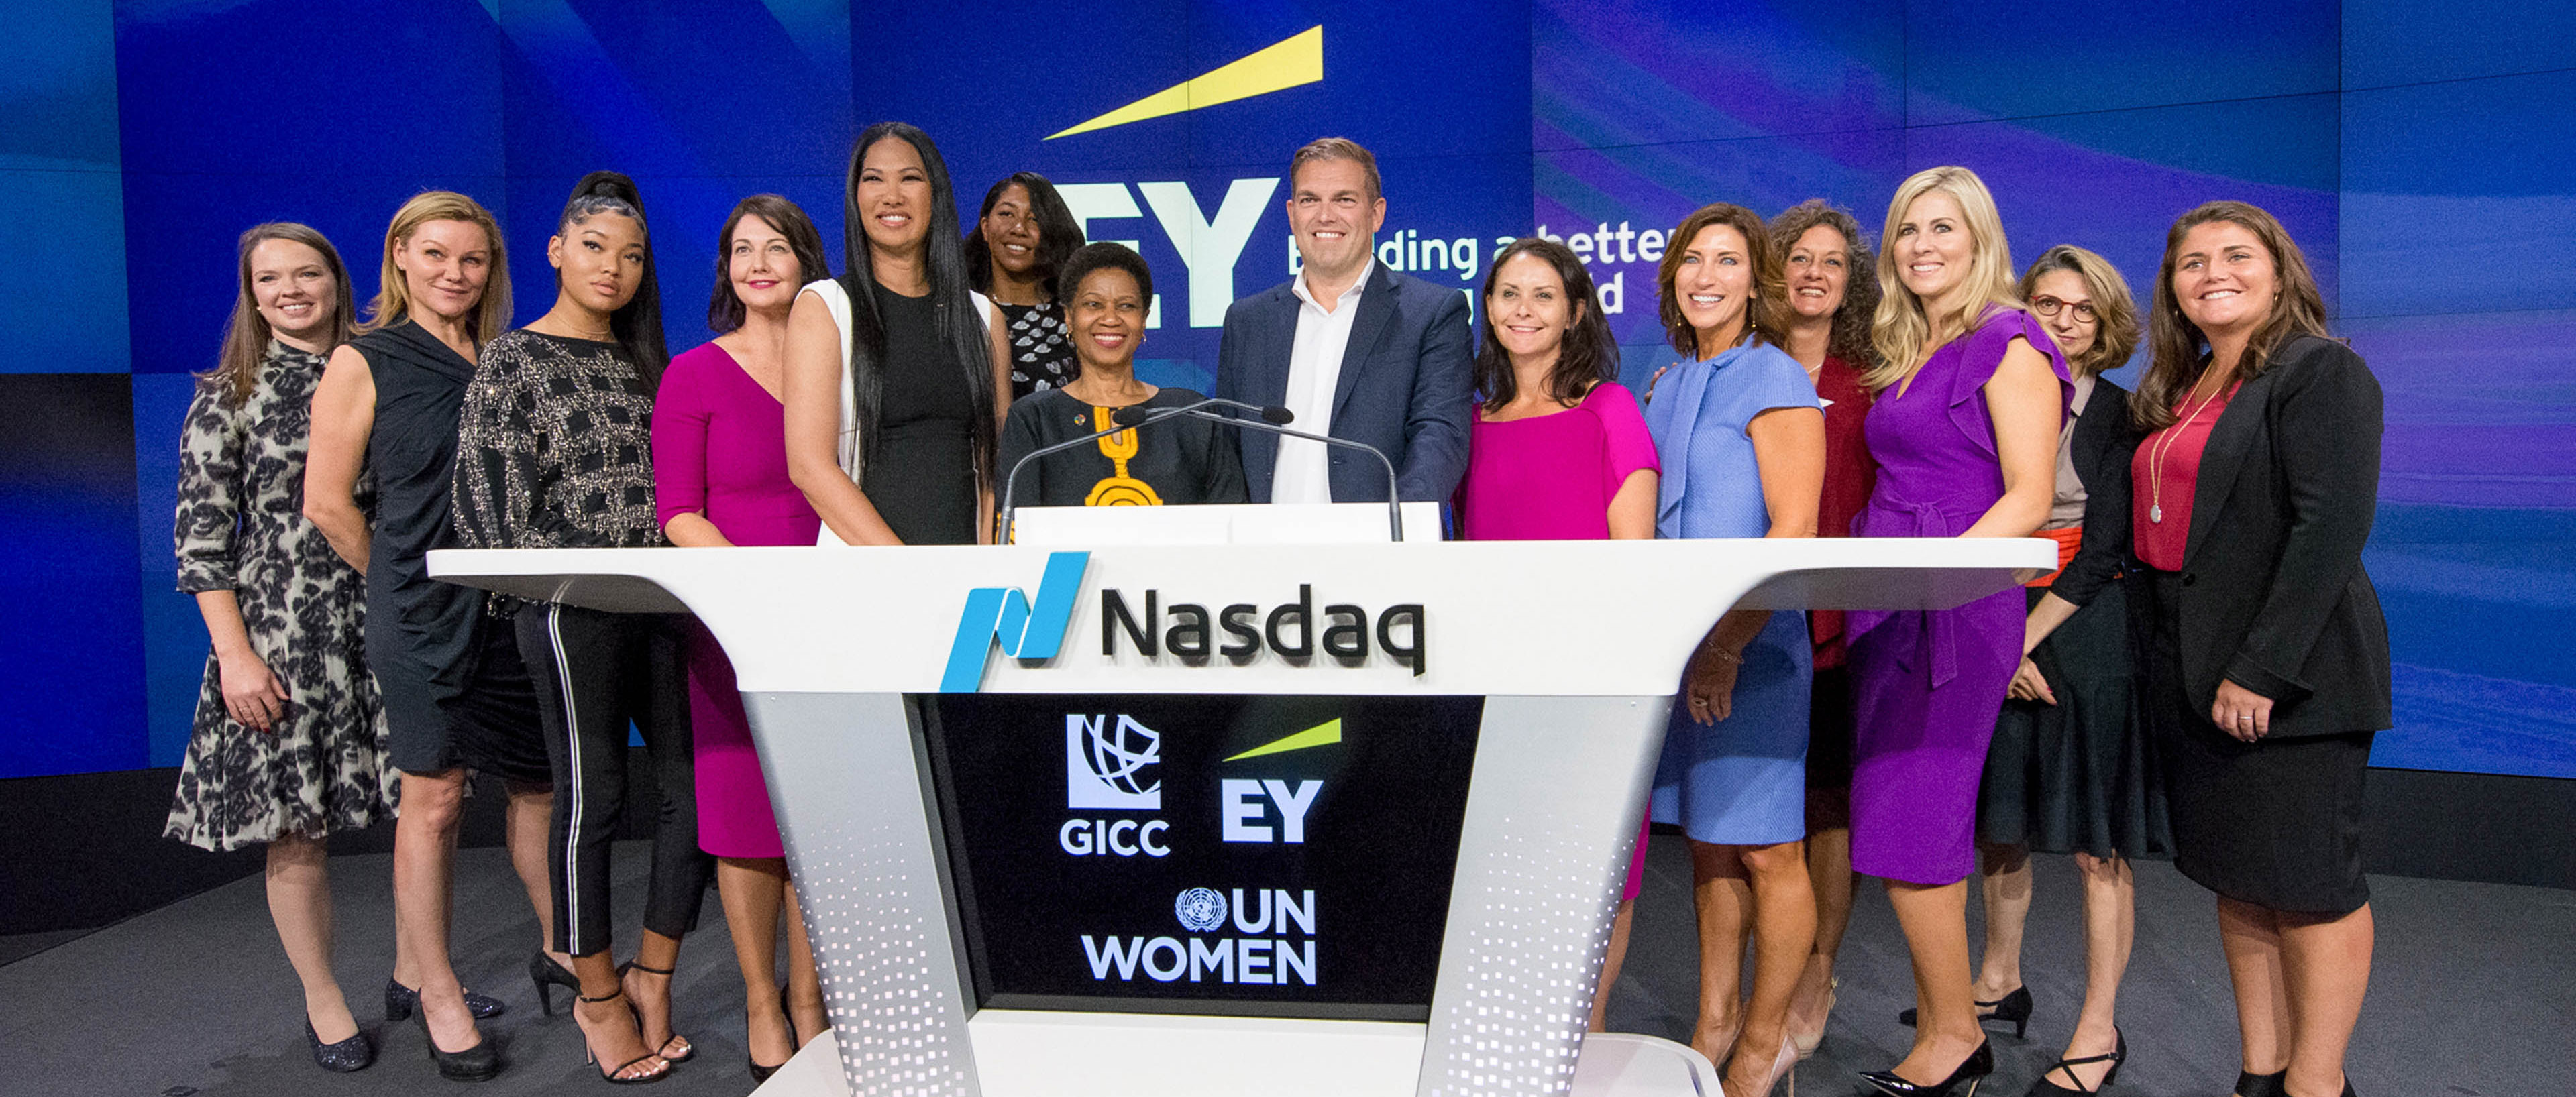 Women at the NASDAQ for GICC